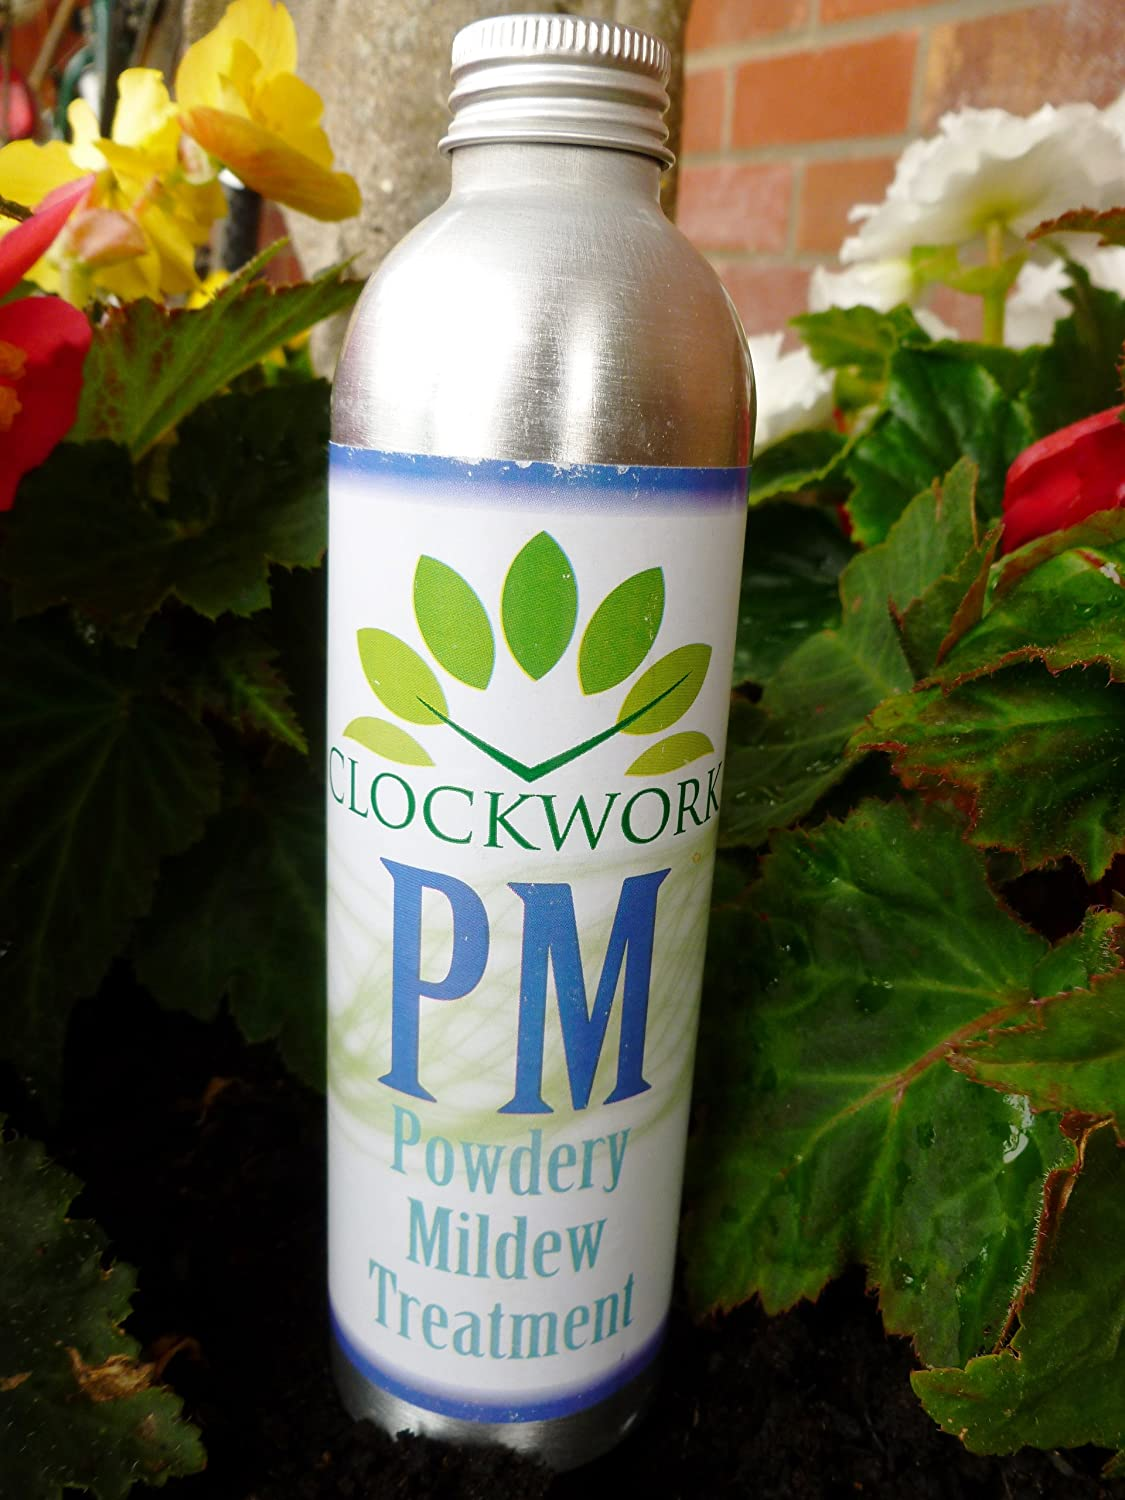 PM Powdery Mildew treatment Clockwork